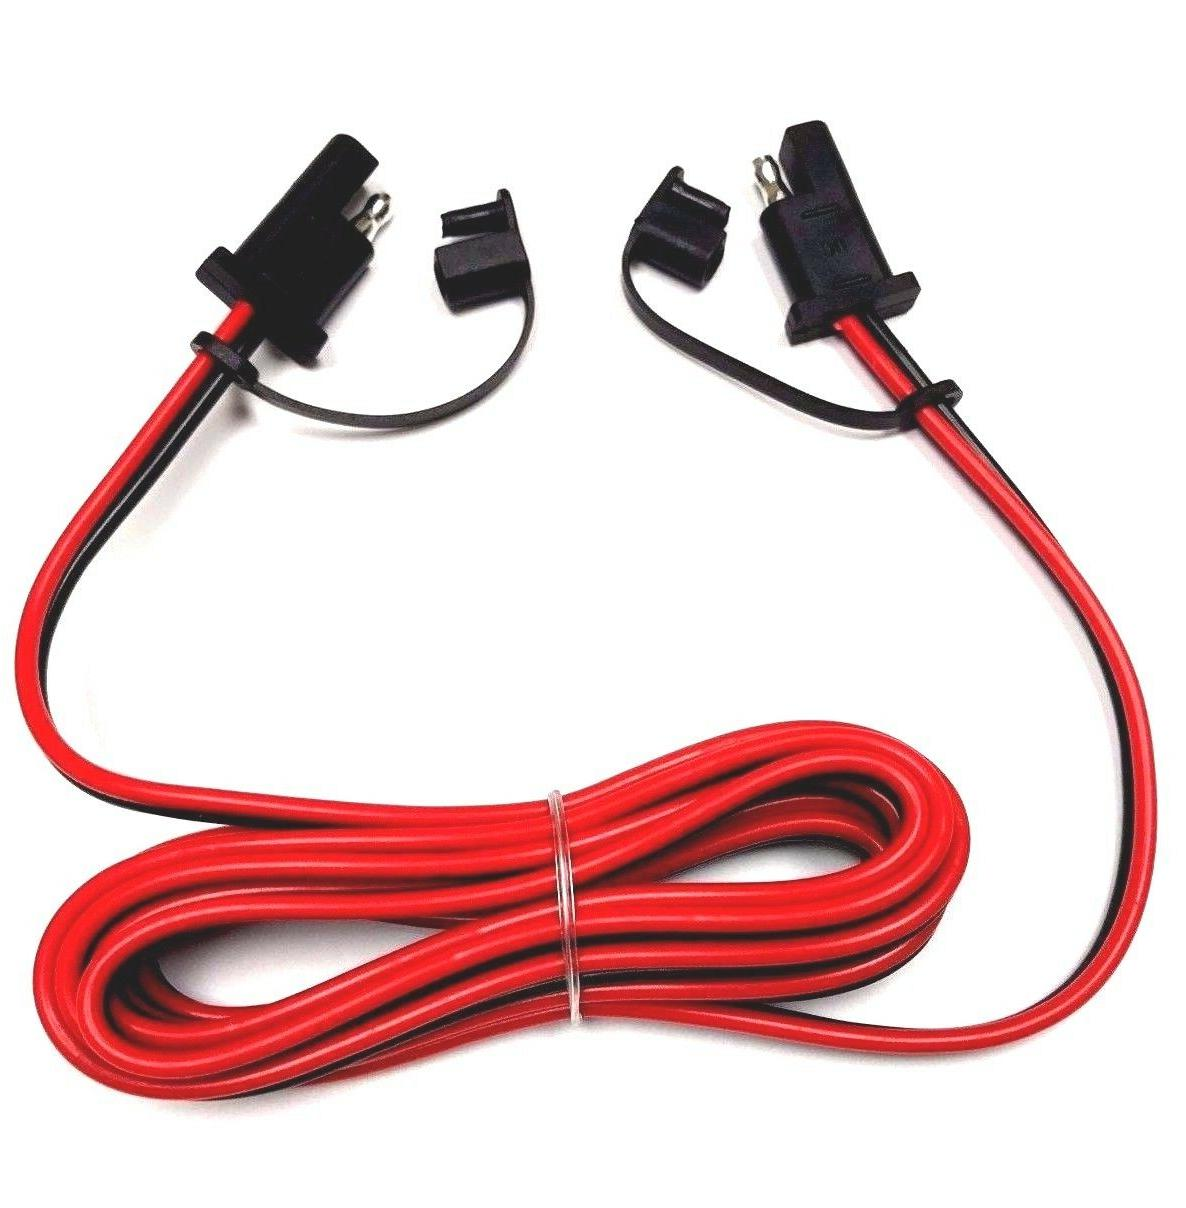 16 Gauge Quick Connect SAE Waterproof Harness